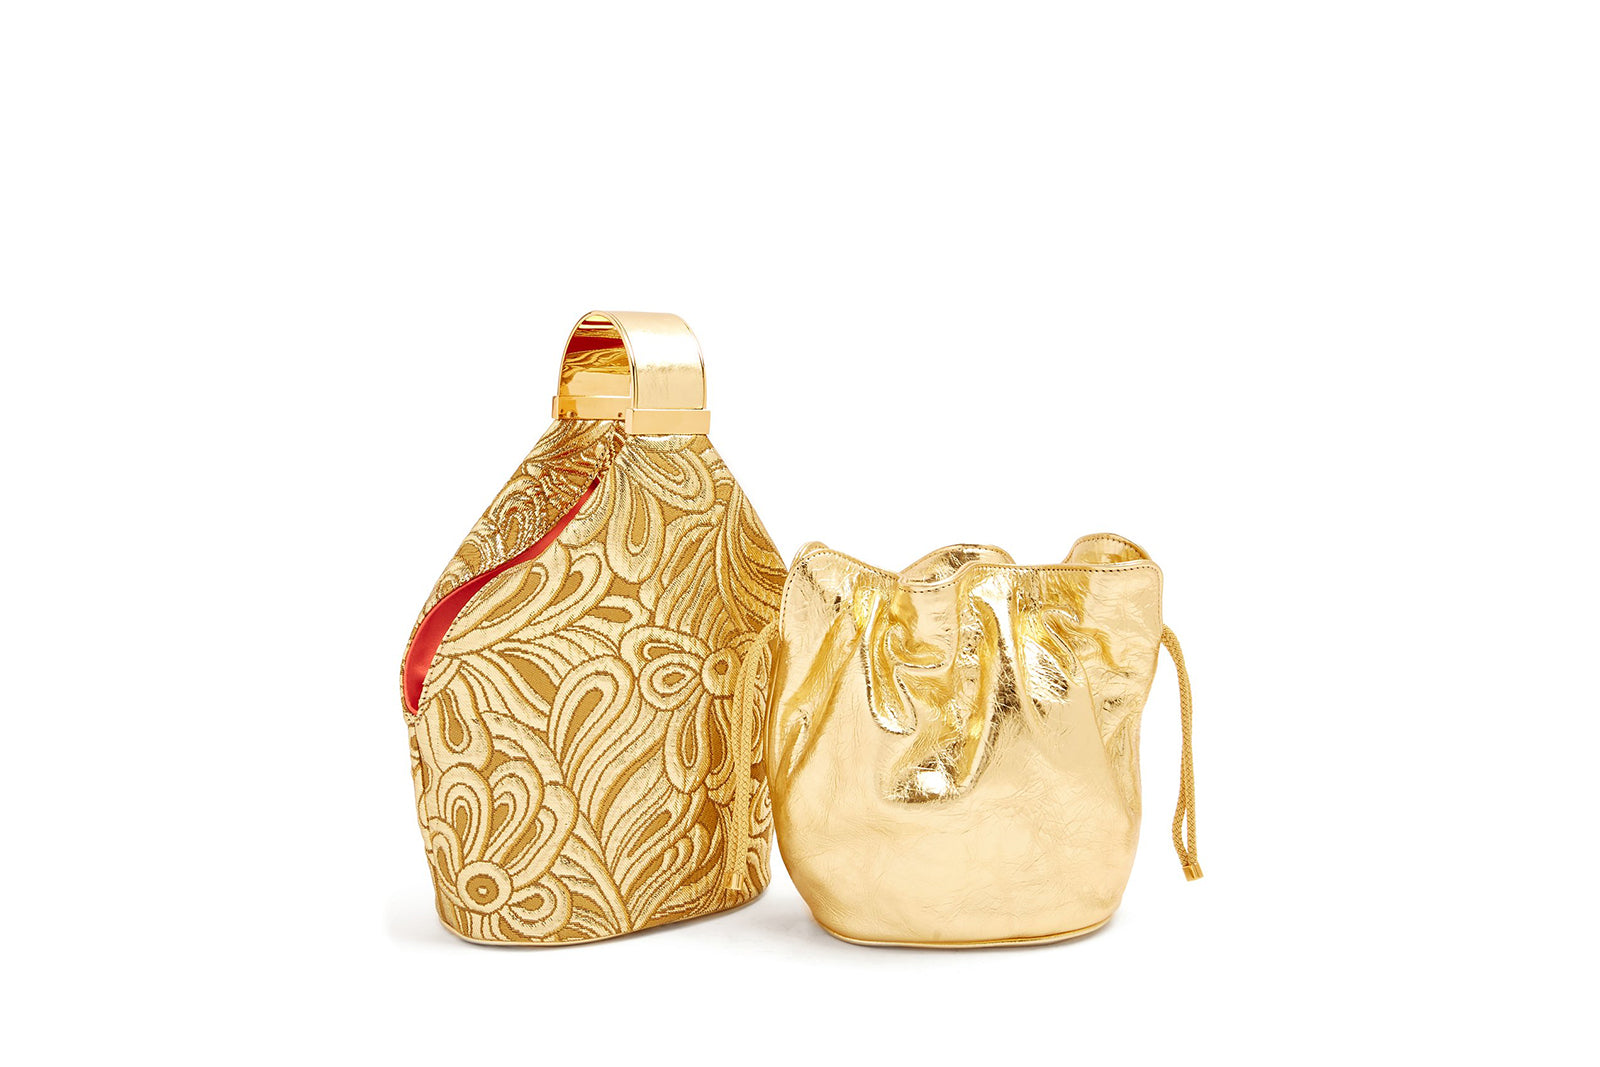 Kit Bracelet Bag in Gold Metallic Brocade with 24K Gold Finished Hardware